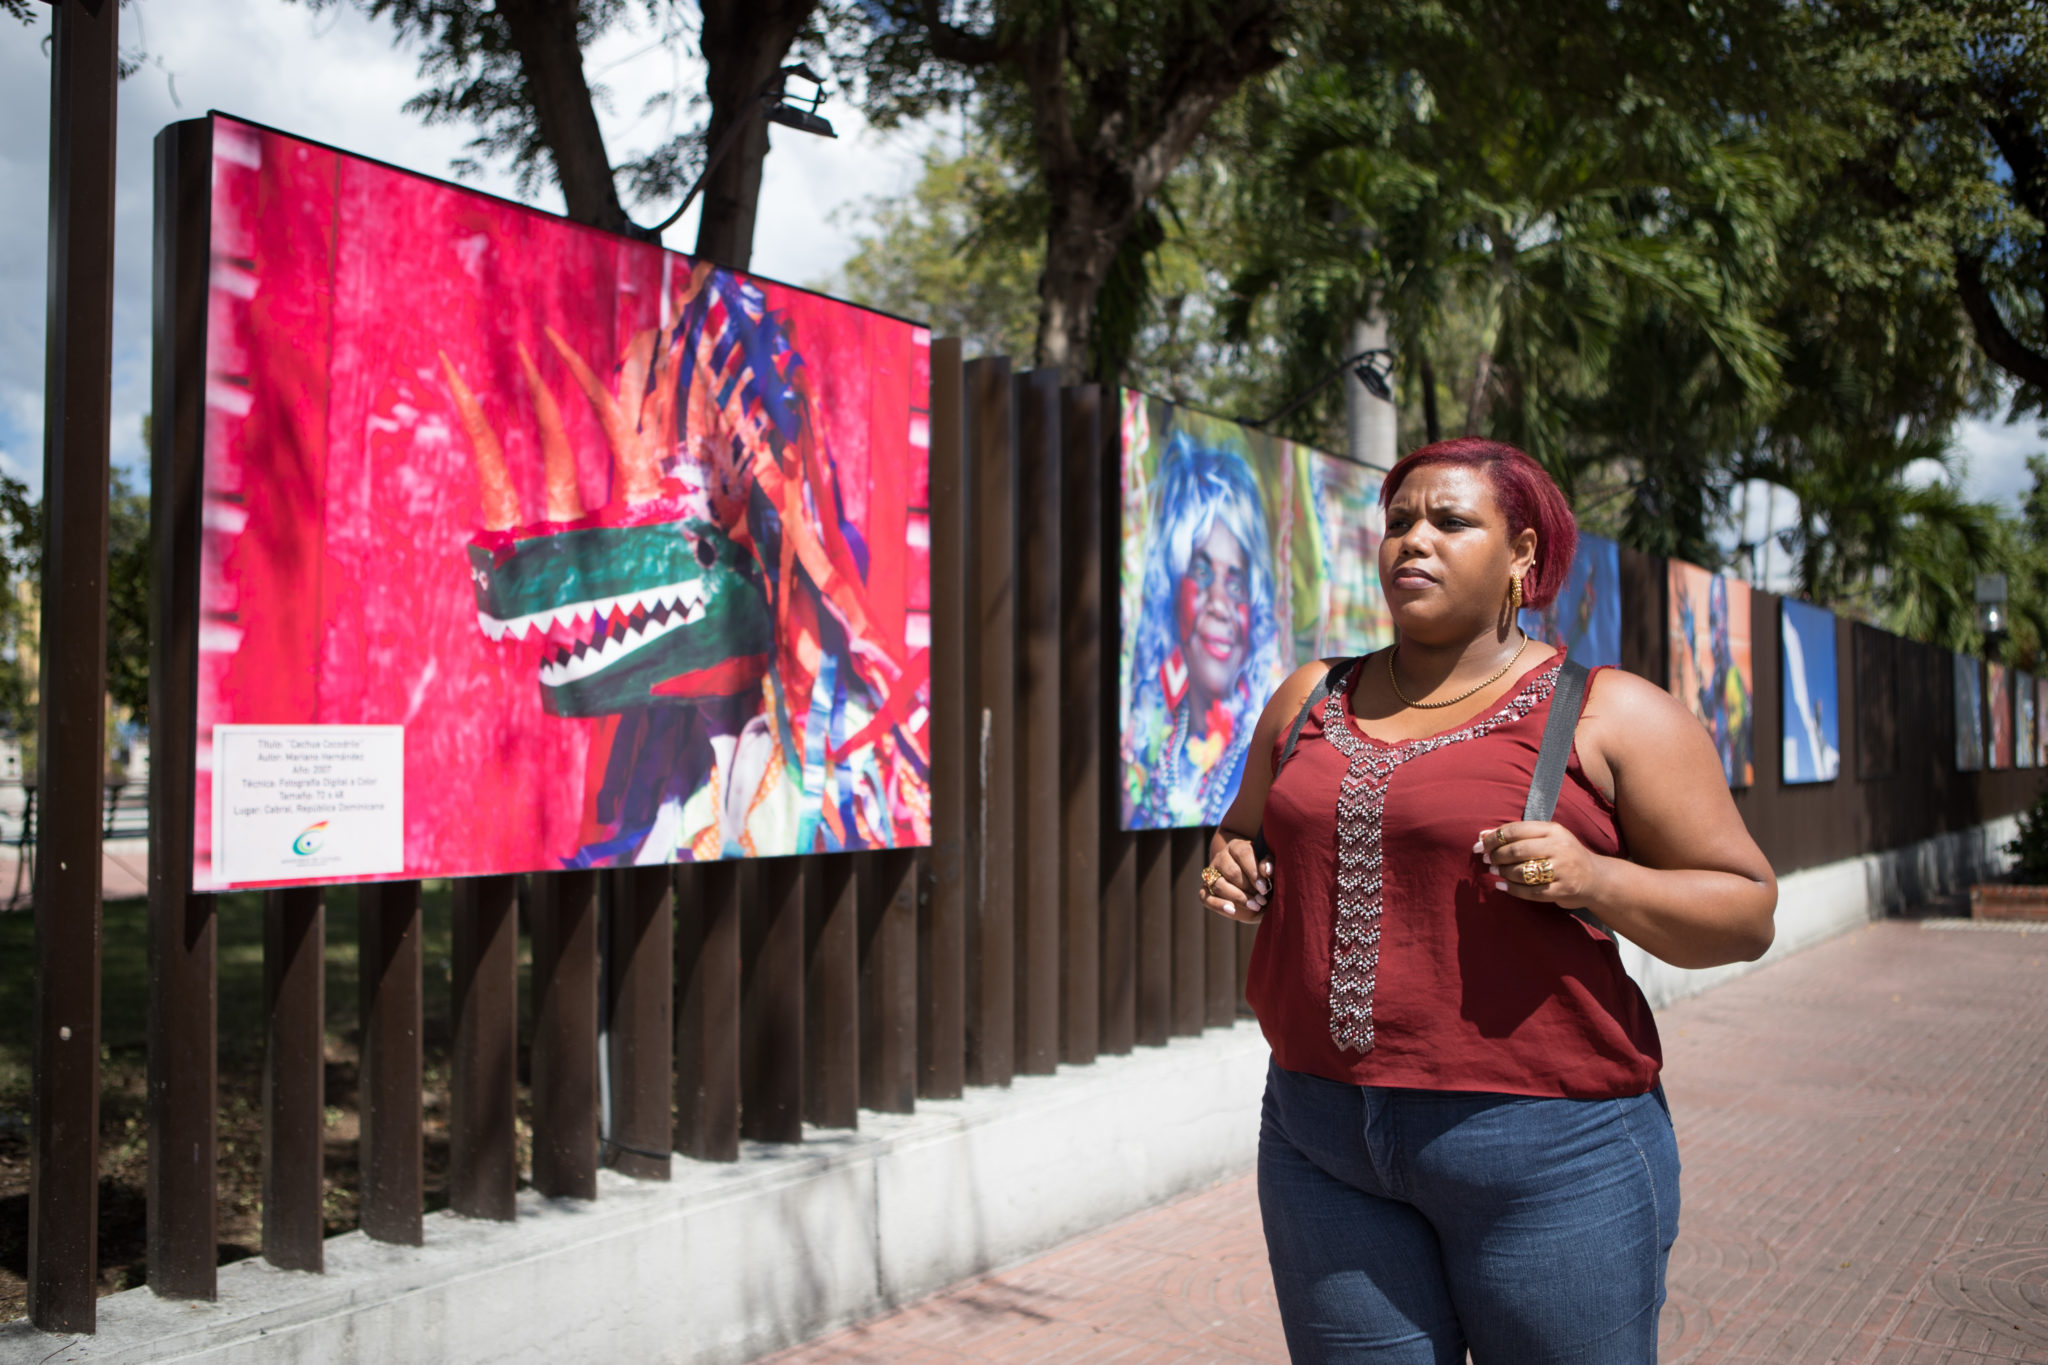 Demand sex workers' protection in the Dominican Republic